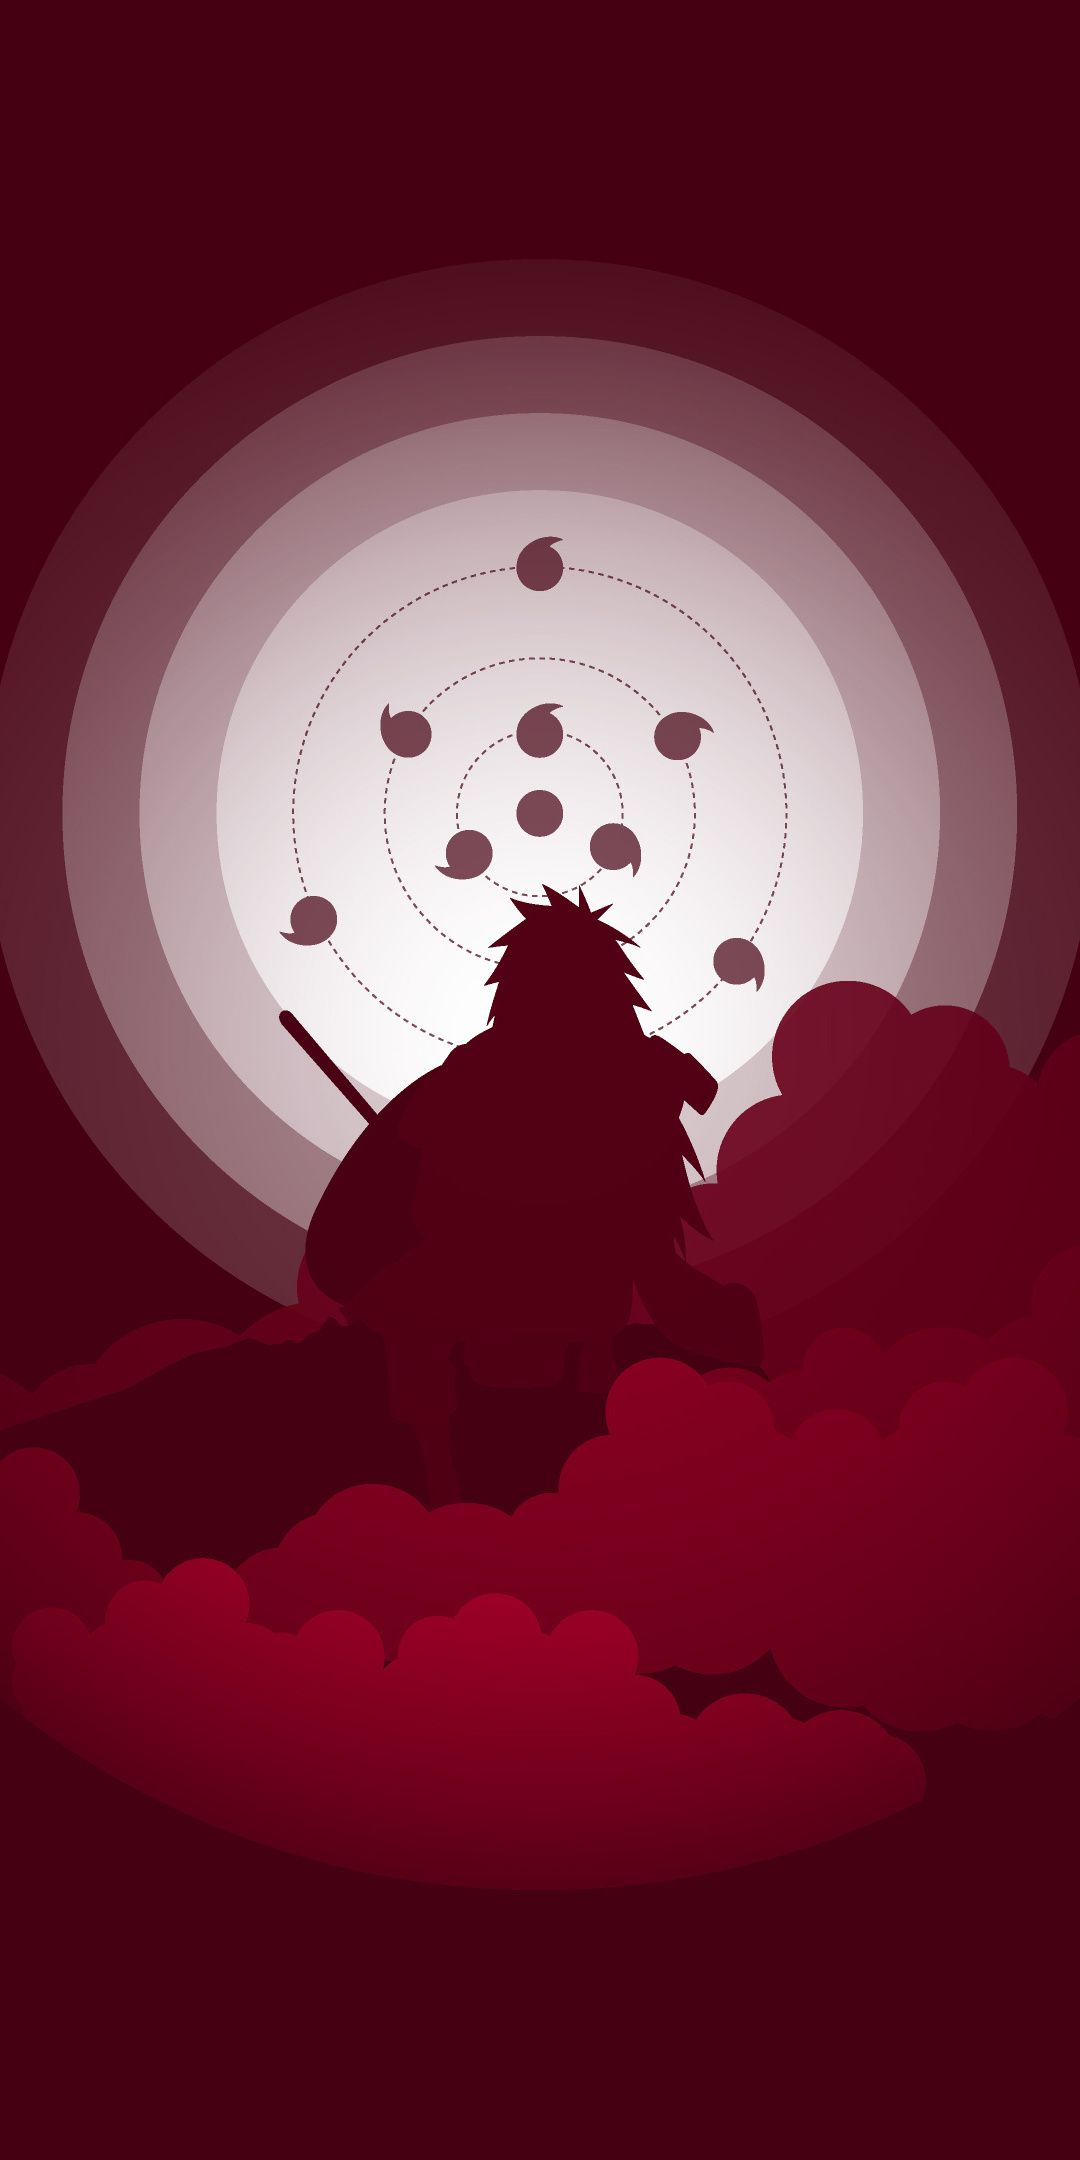 Naruto Shippuuden Artwork Minimal 1080x2160 Wallpaper